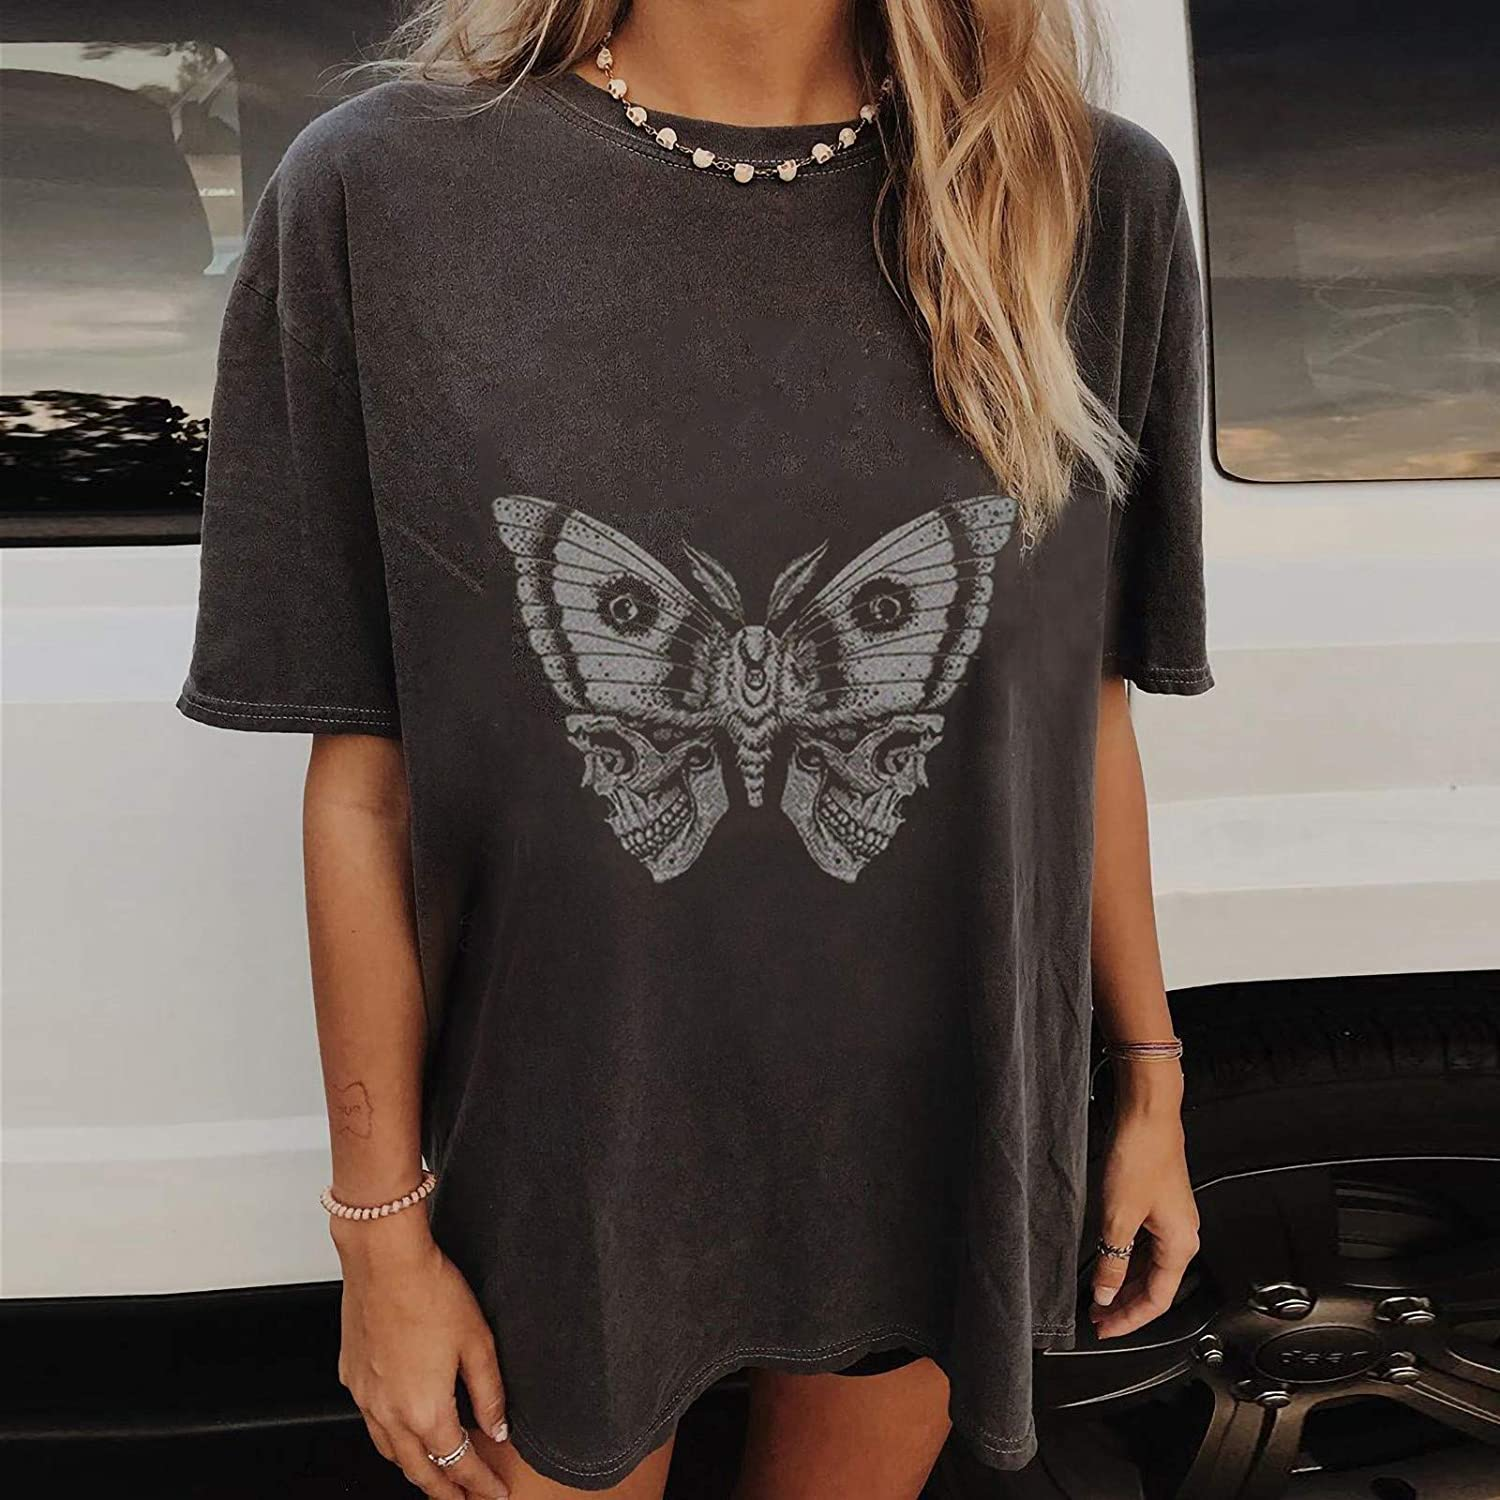 Shirts Graphic Tee for Women Vintage Summer Casual Short Sleeve O-Neck Tshirts Blouse Loose Fit Tops